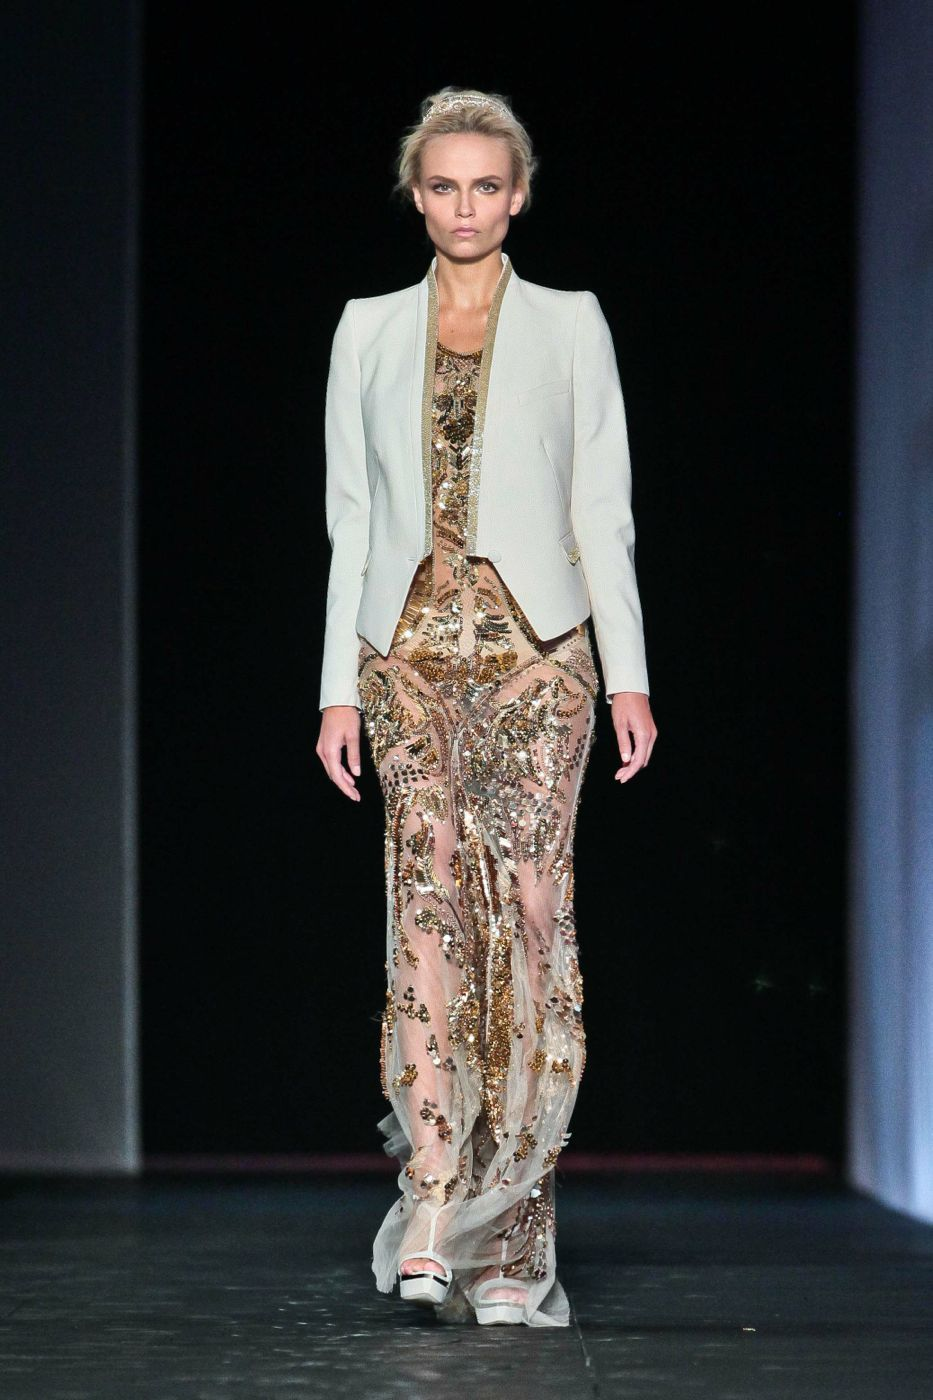 Catwalk Roberto Cavalli Spring Summer 2012 Women Fashion Show